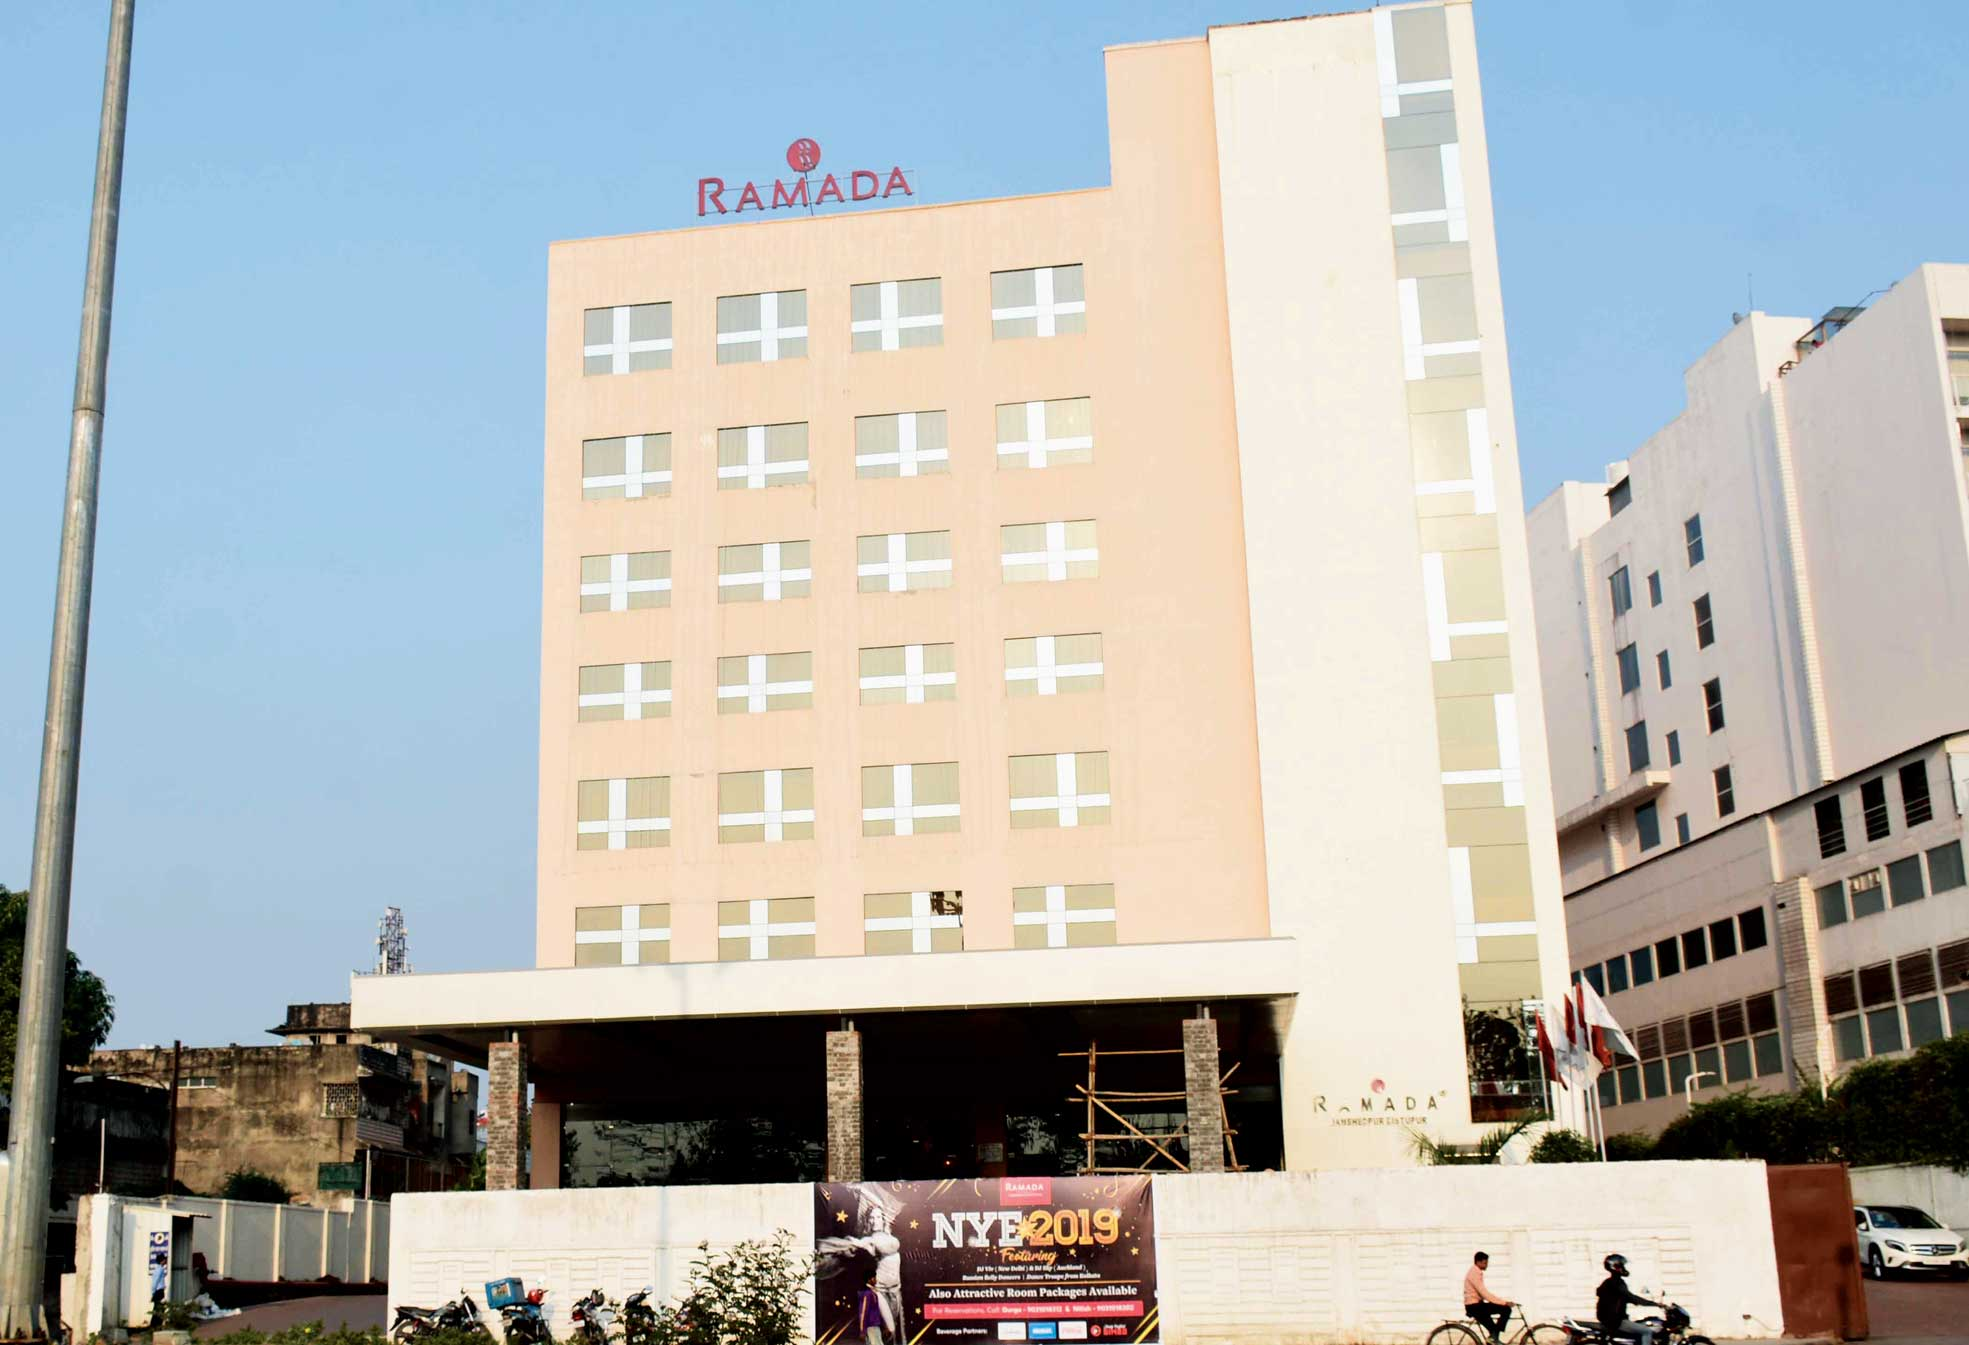 Hotel Ramada is one of the hottest joints for New Year revelry.